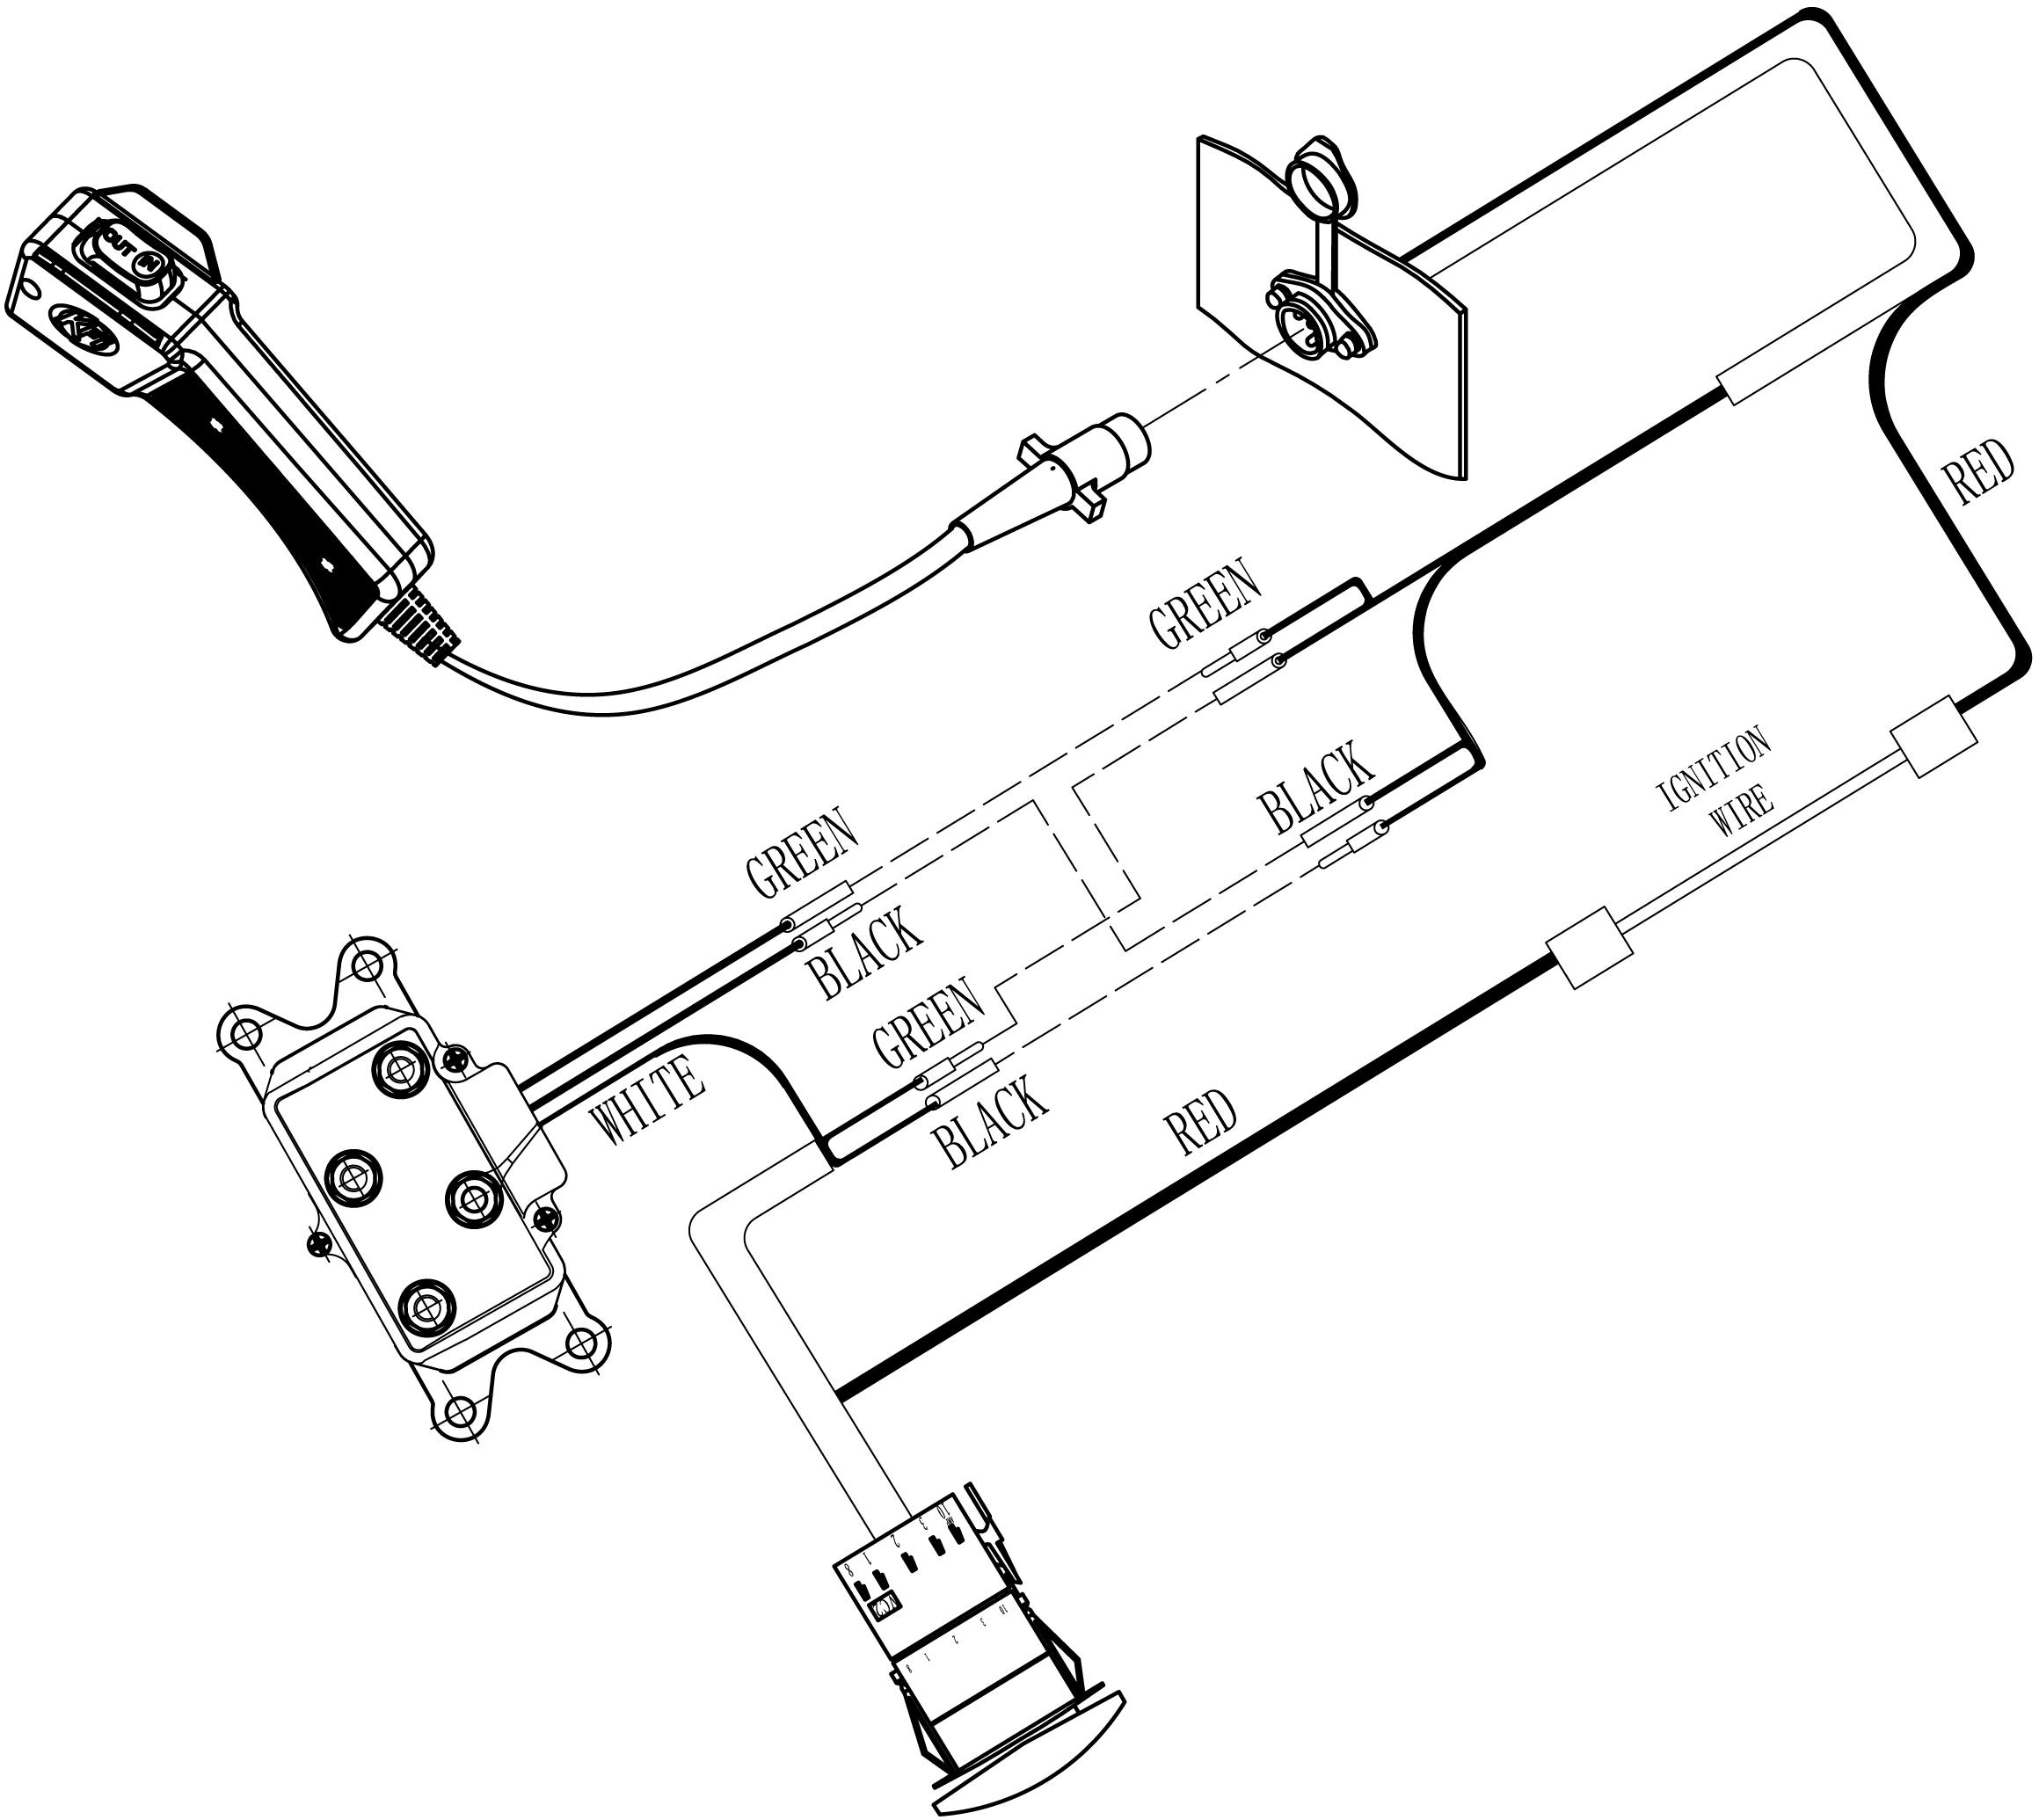 KFI_Carling_Switch_Wring_Diagram kfi winch wiring diagram atv winch solenoid wiring diagram wiring diagram for atv winch contactor at webbmarketing.co